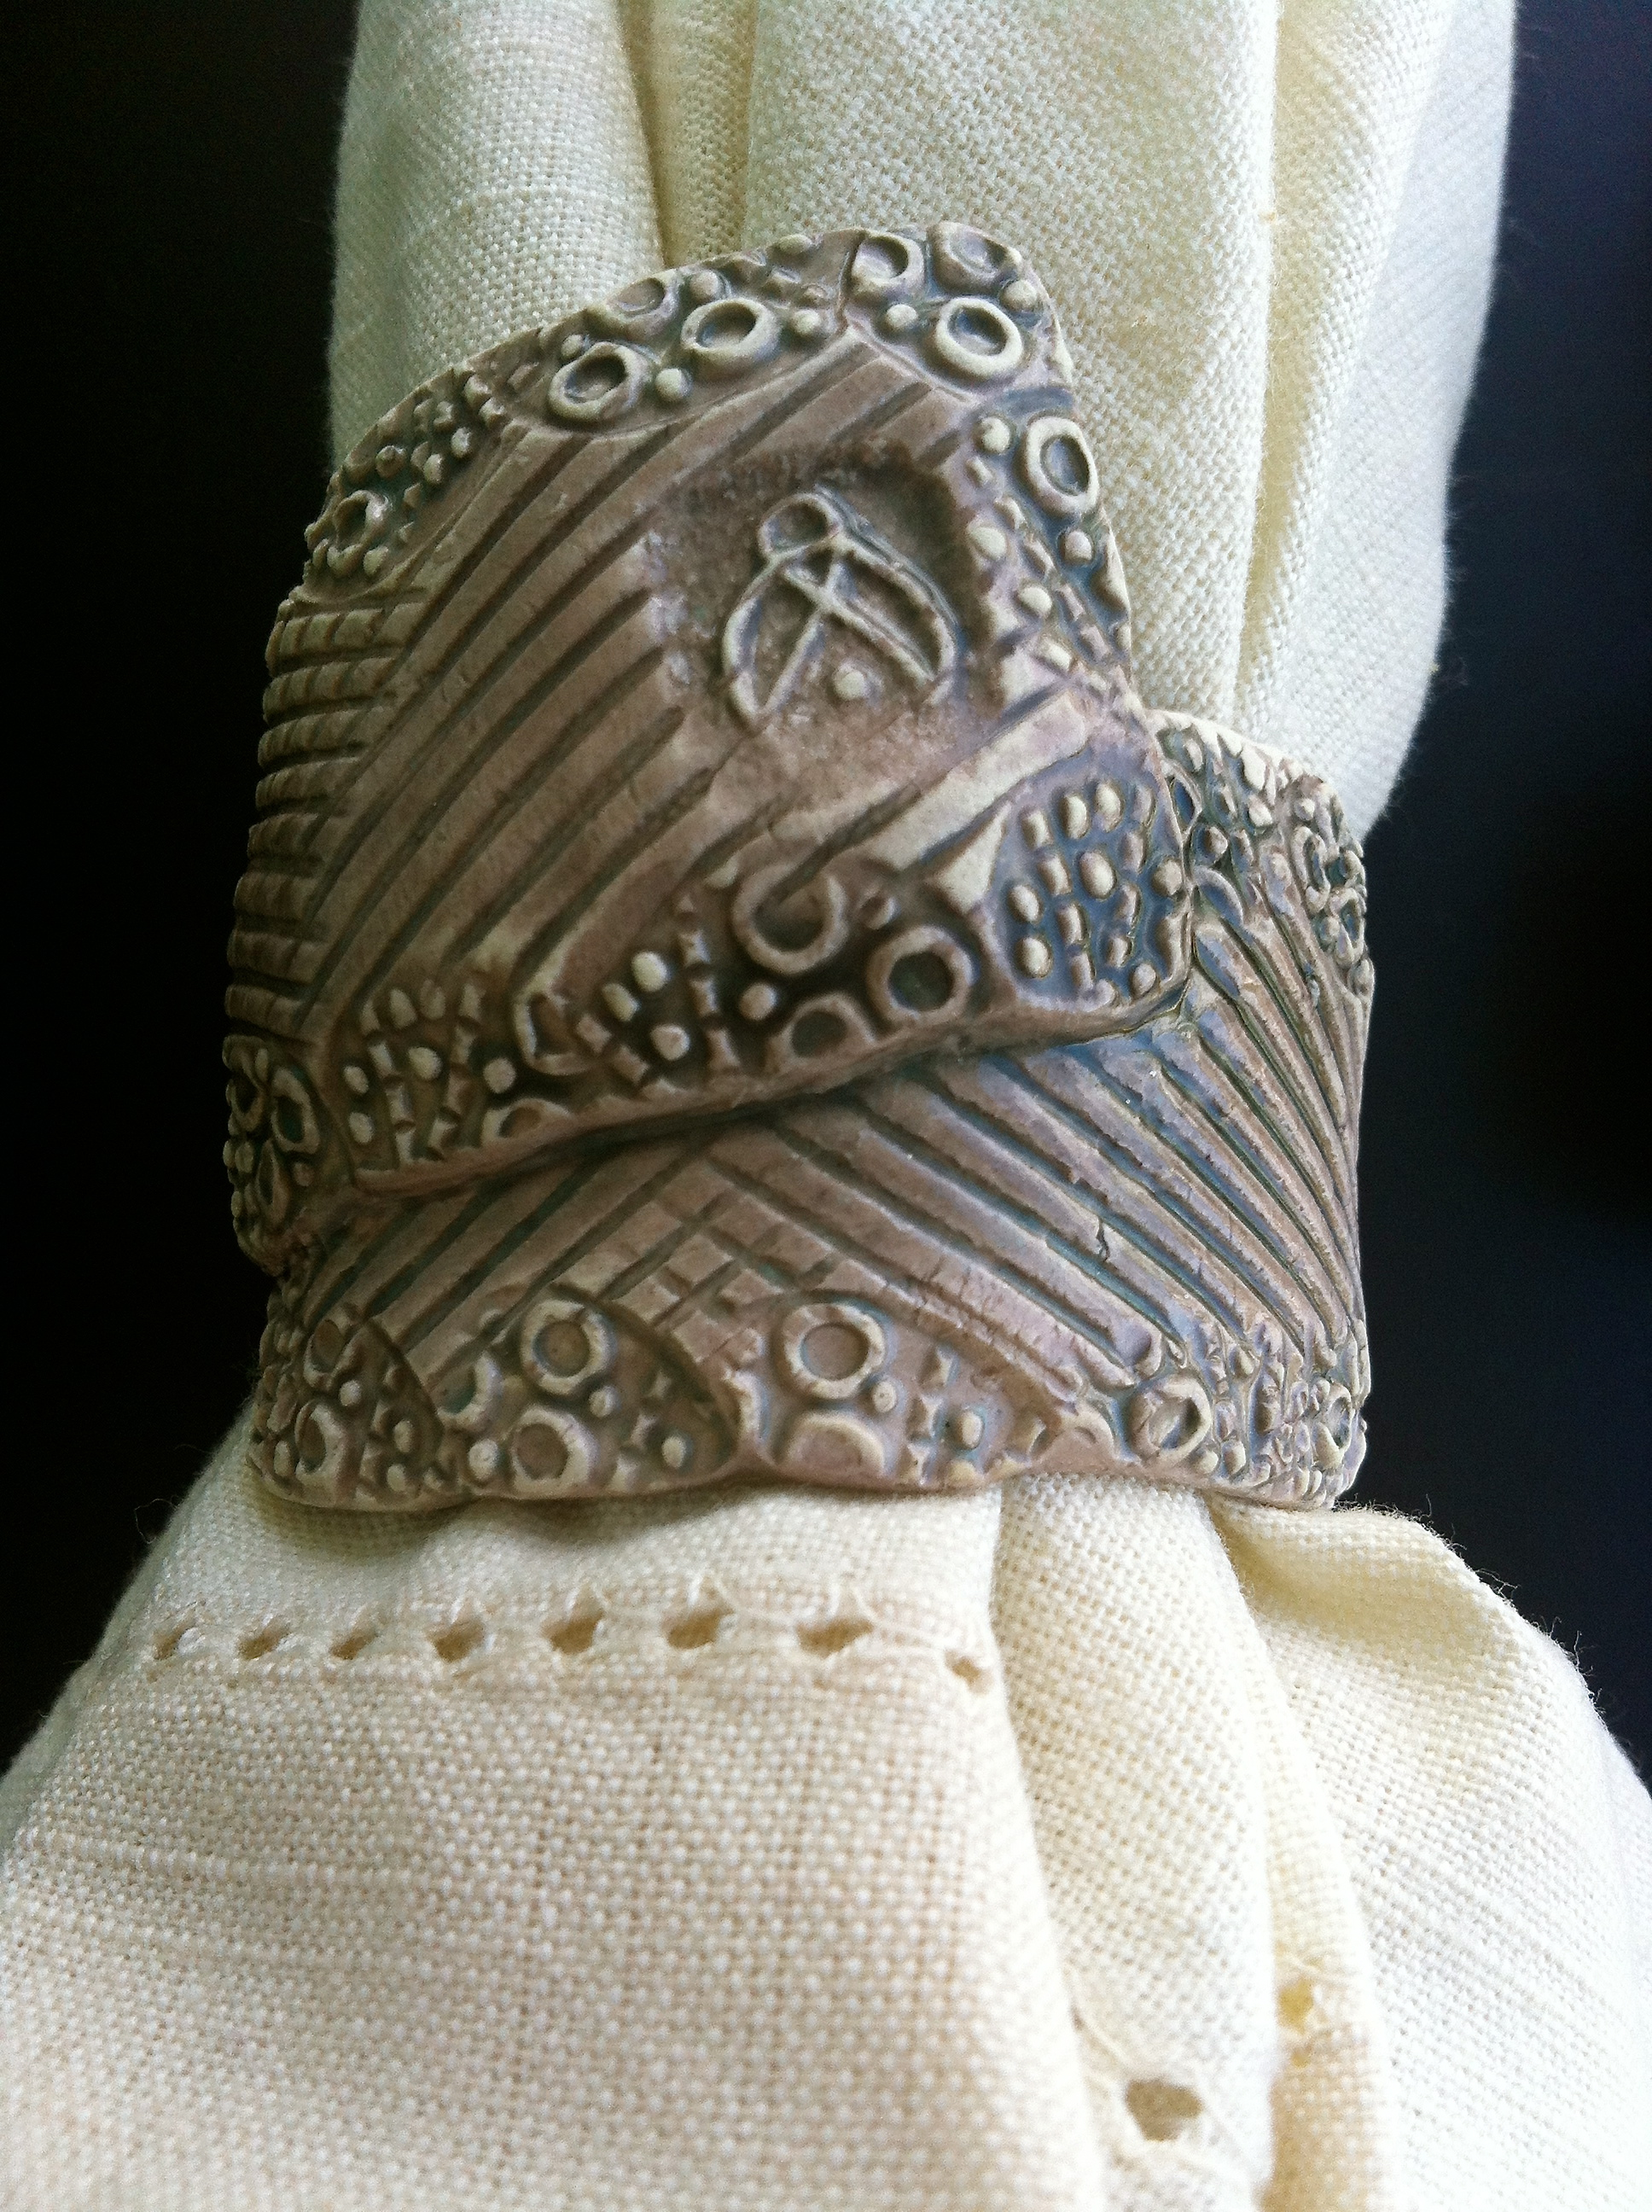 Detail of napkin ring made by hand in The Bahamas.